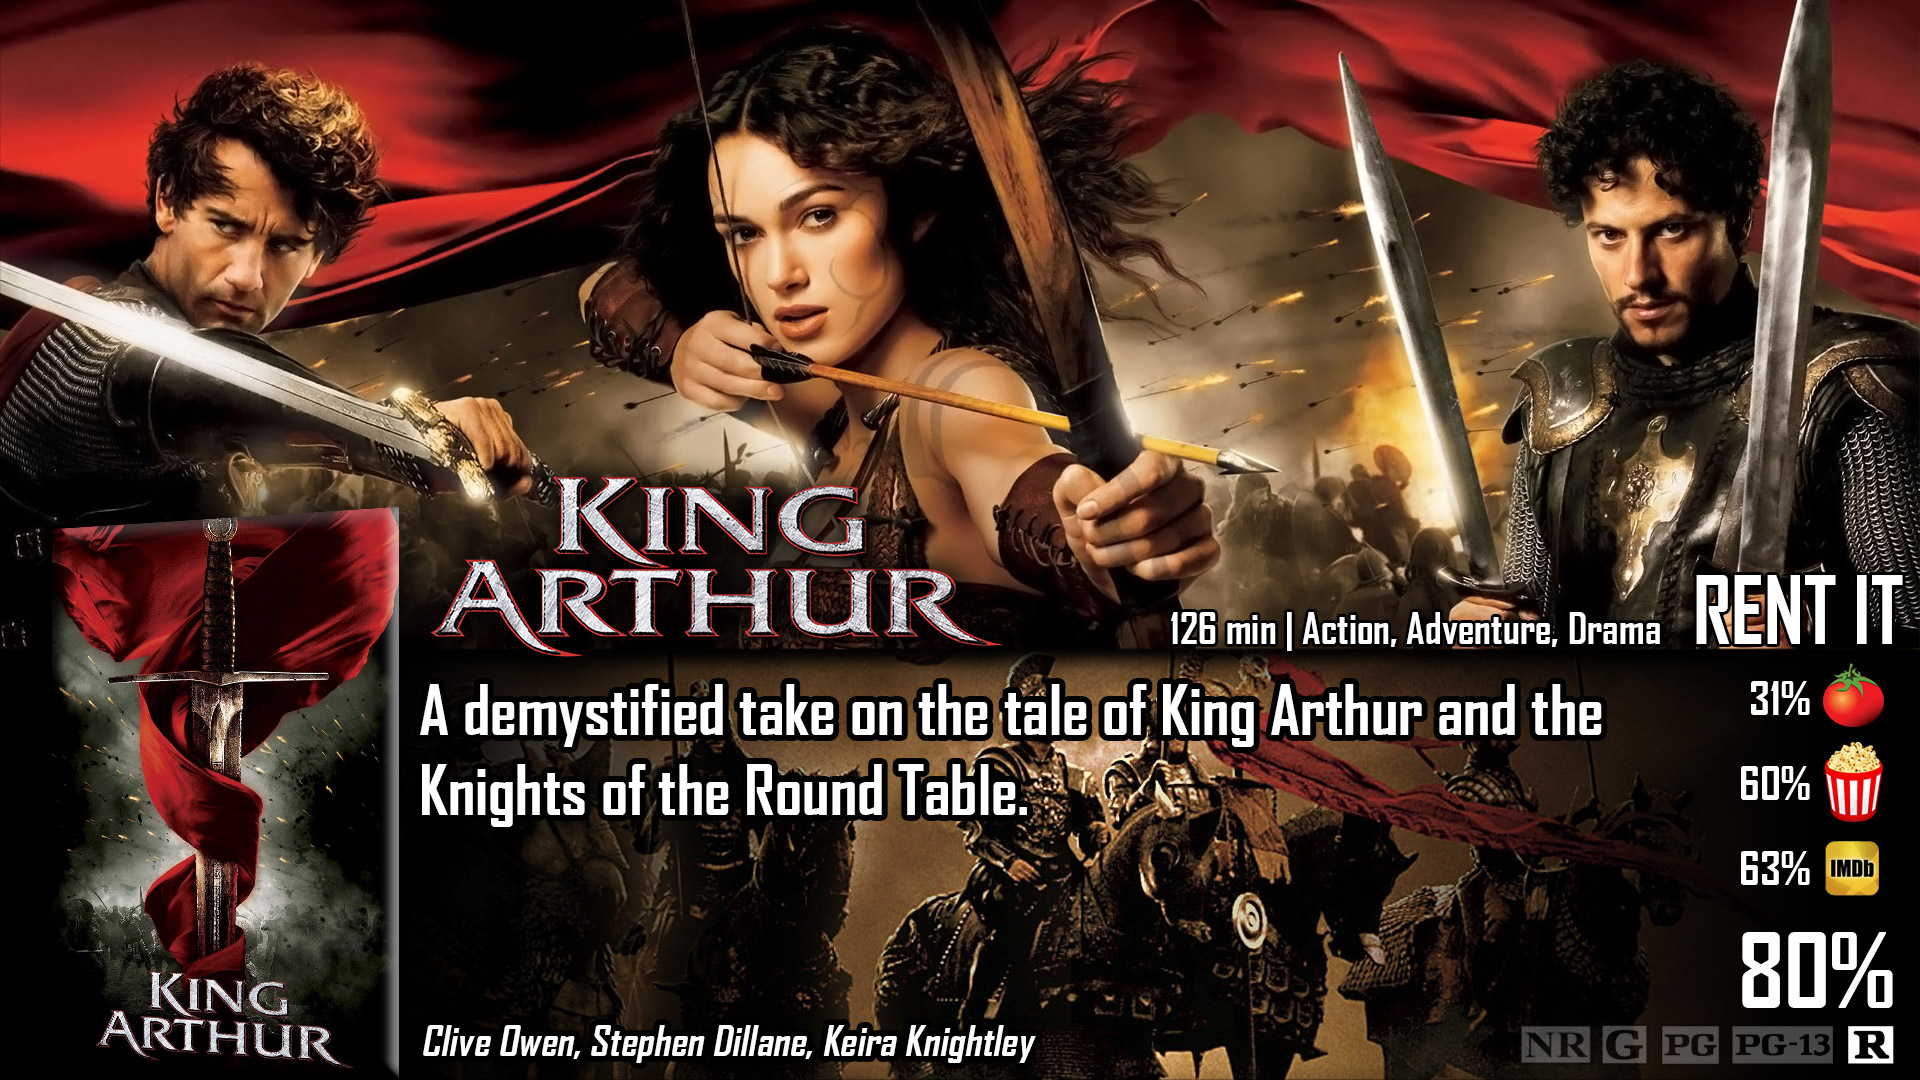 King Arthur (2004) – Dave Examines Movies